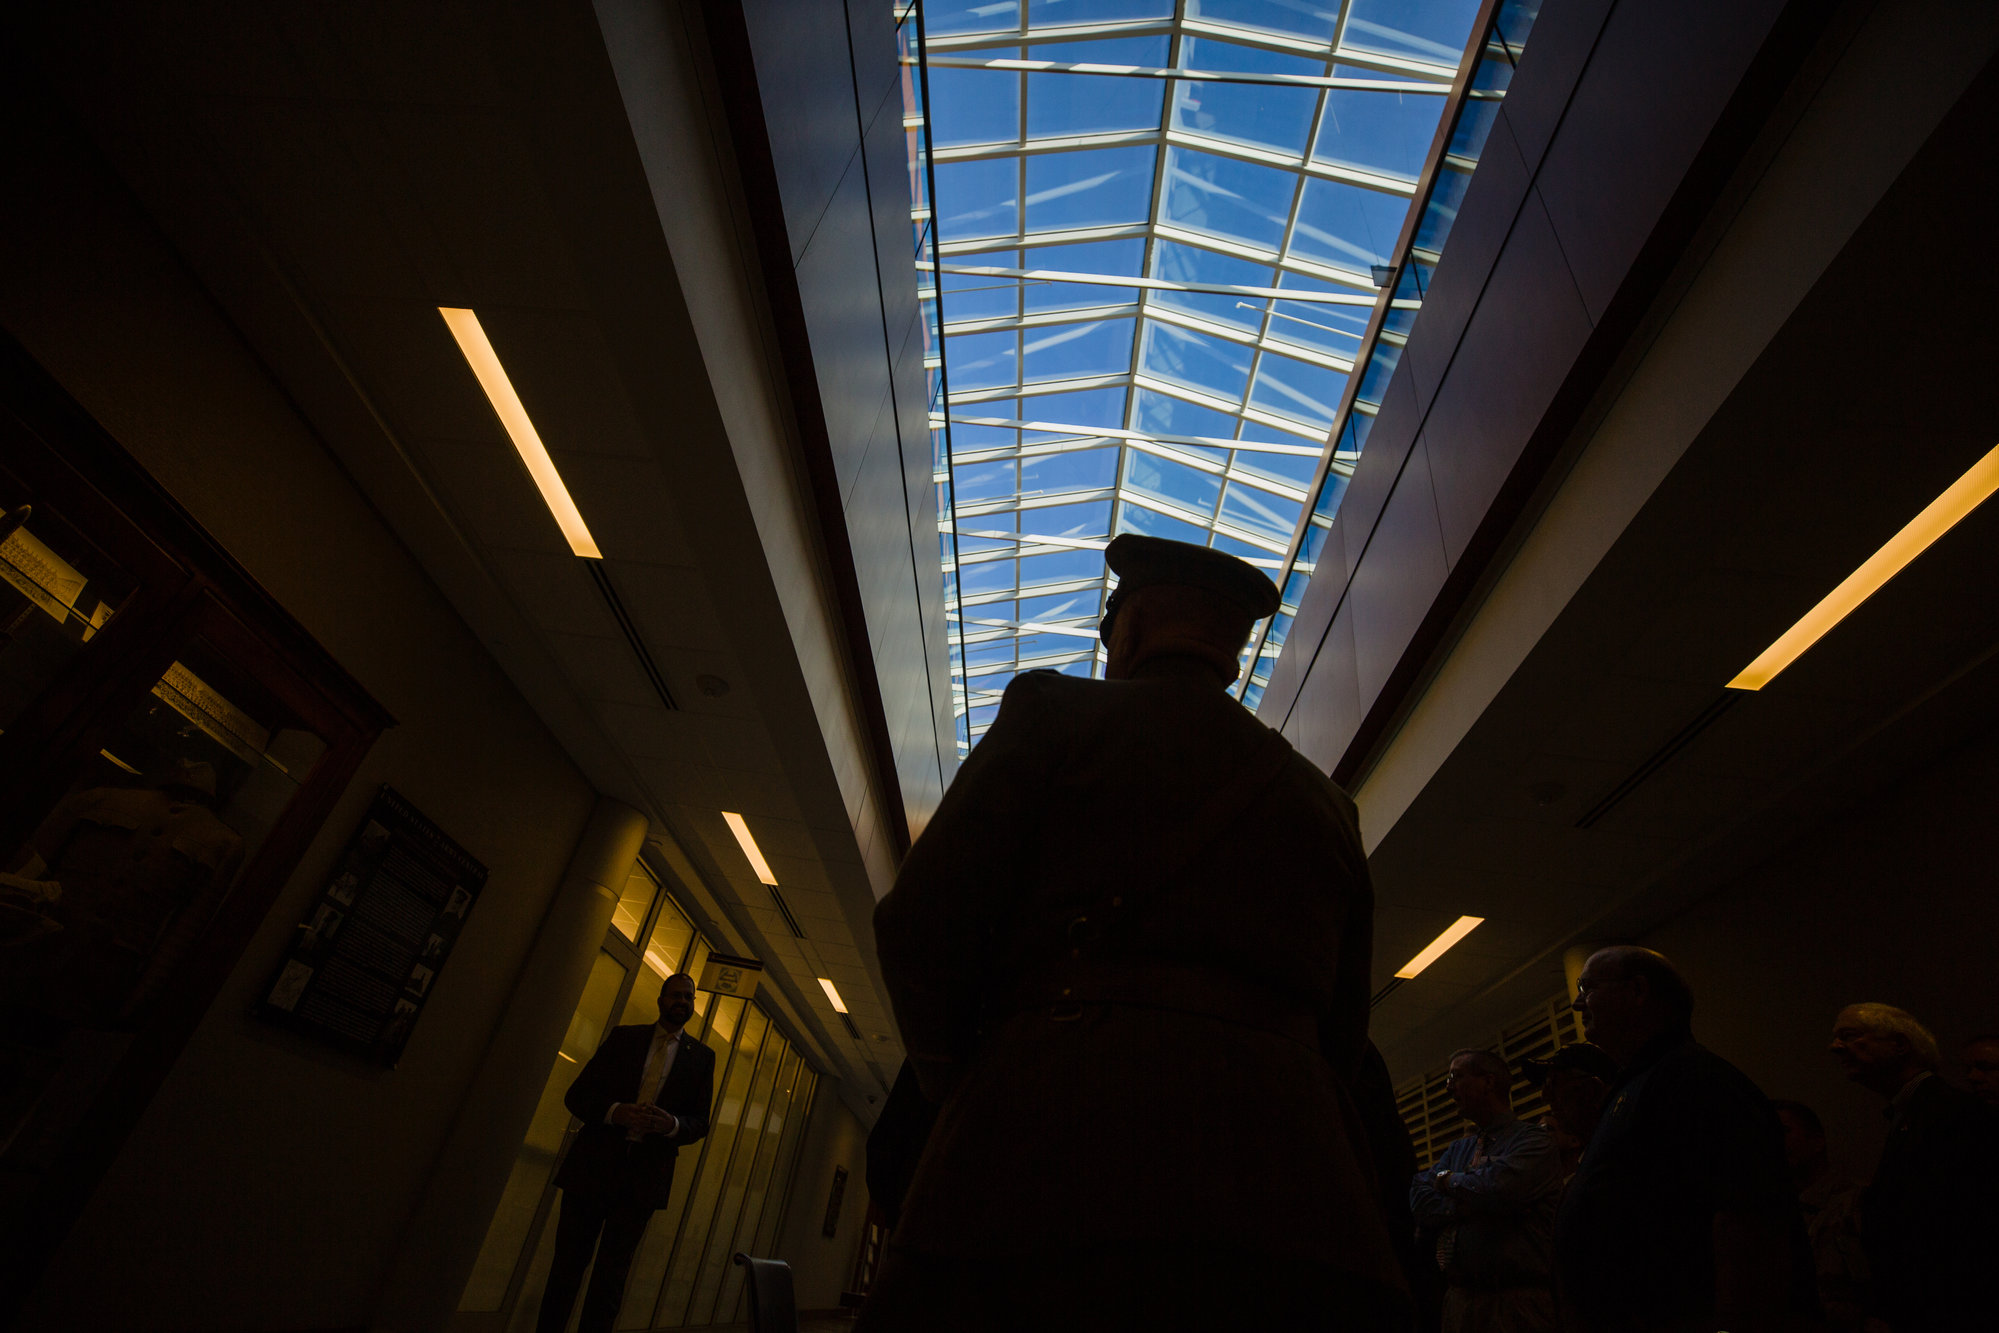 A living history re-enactor is silhouetted in the skylight in the main hall at ARCENT.